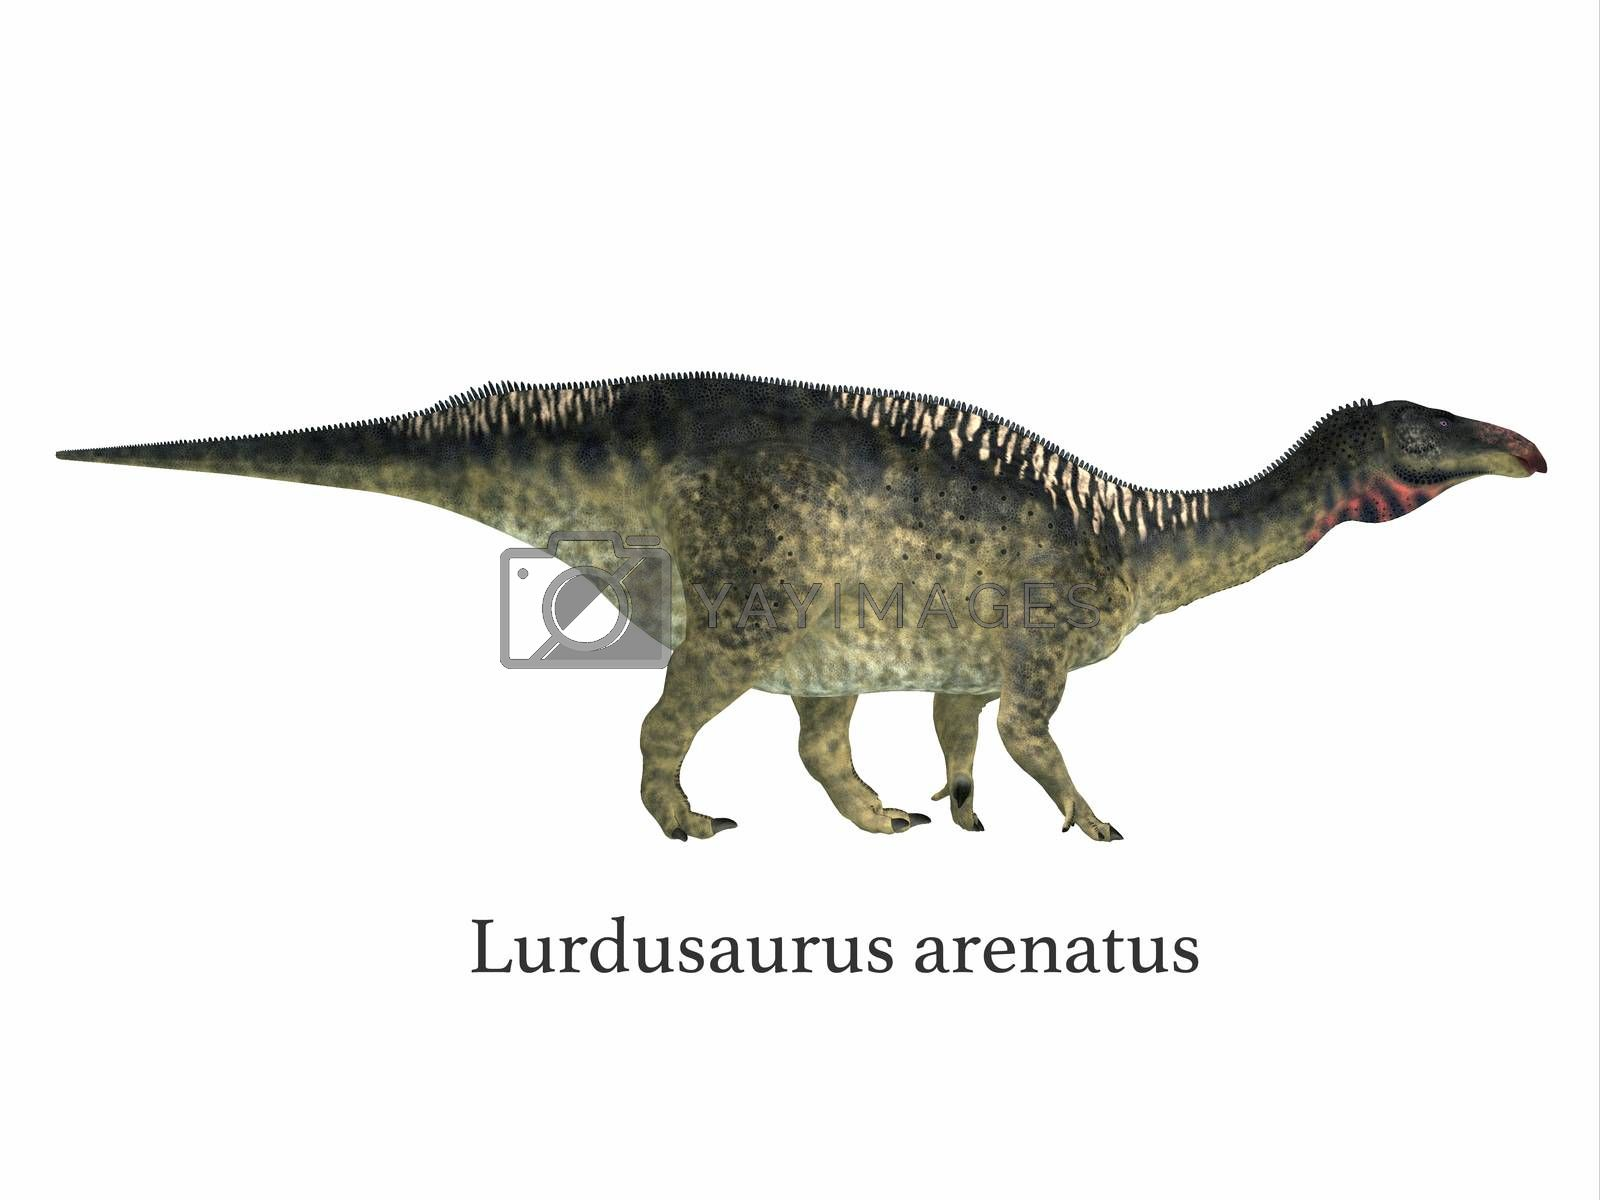 Lurdusaurus was a herbivorous ornithopod iguanodont dinosaur that lived in Niger in the Cretaceous Period.